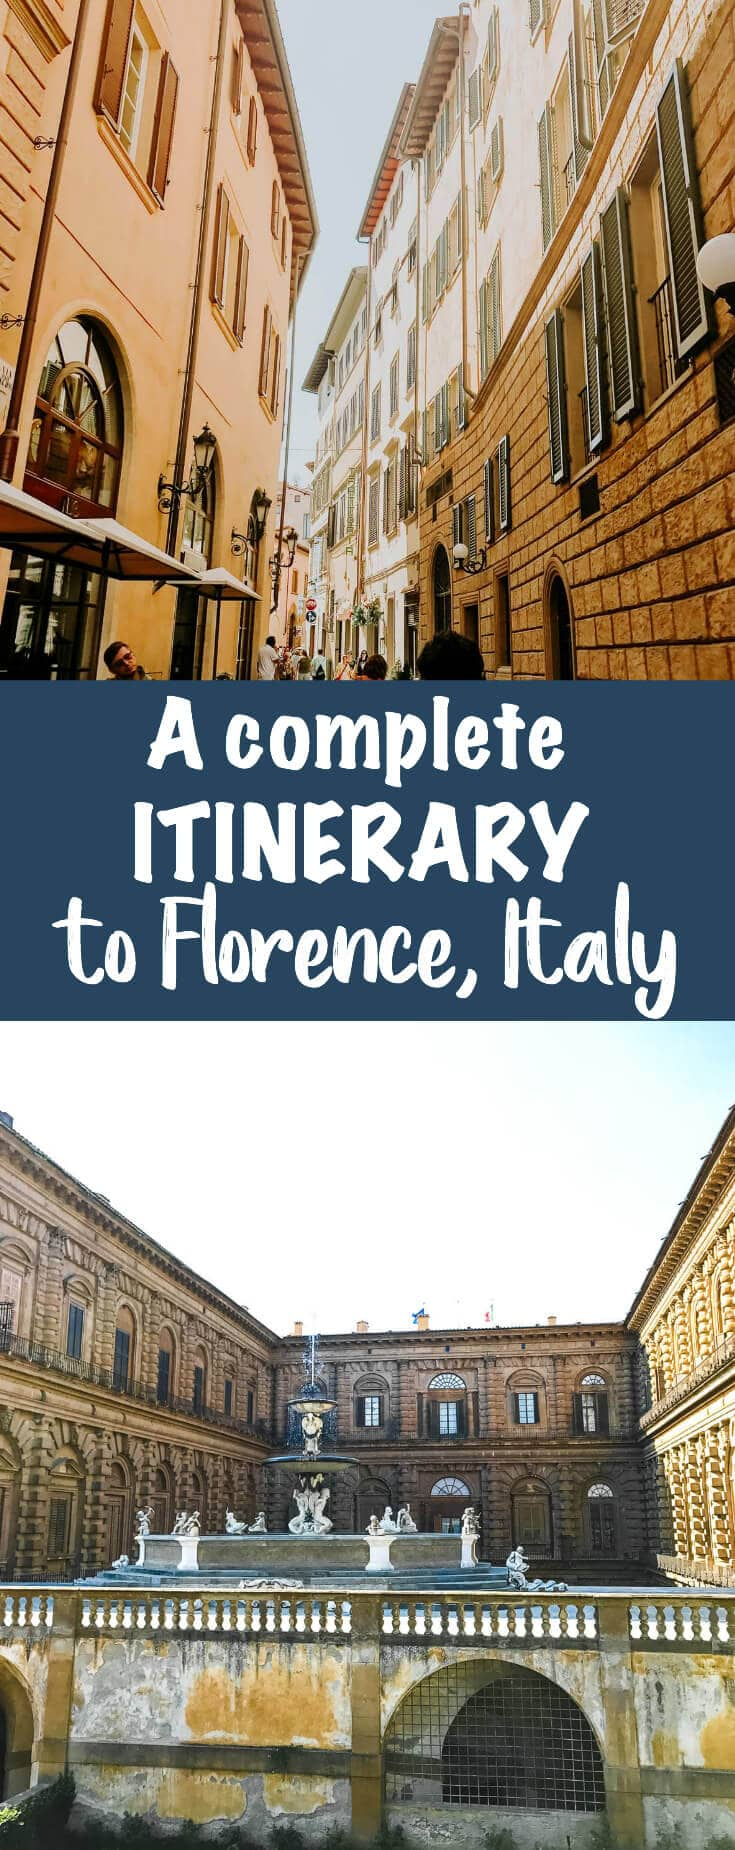 Make sure you save this post and you wont have to stress about a trip to Italy. A Complete Itinerary to Florence, Italy with food, tips and activities.